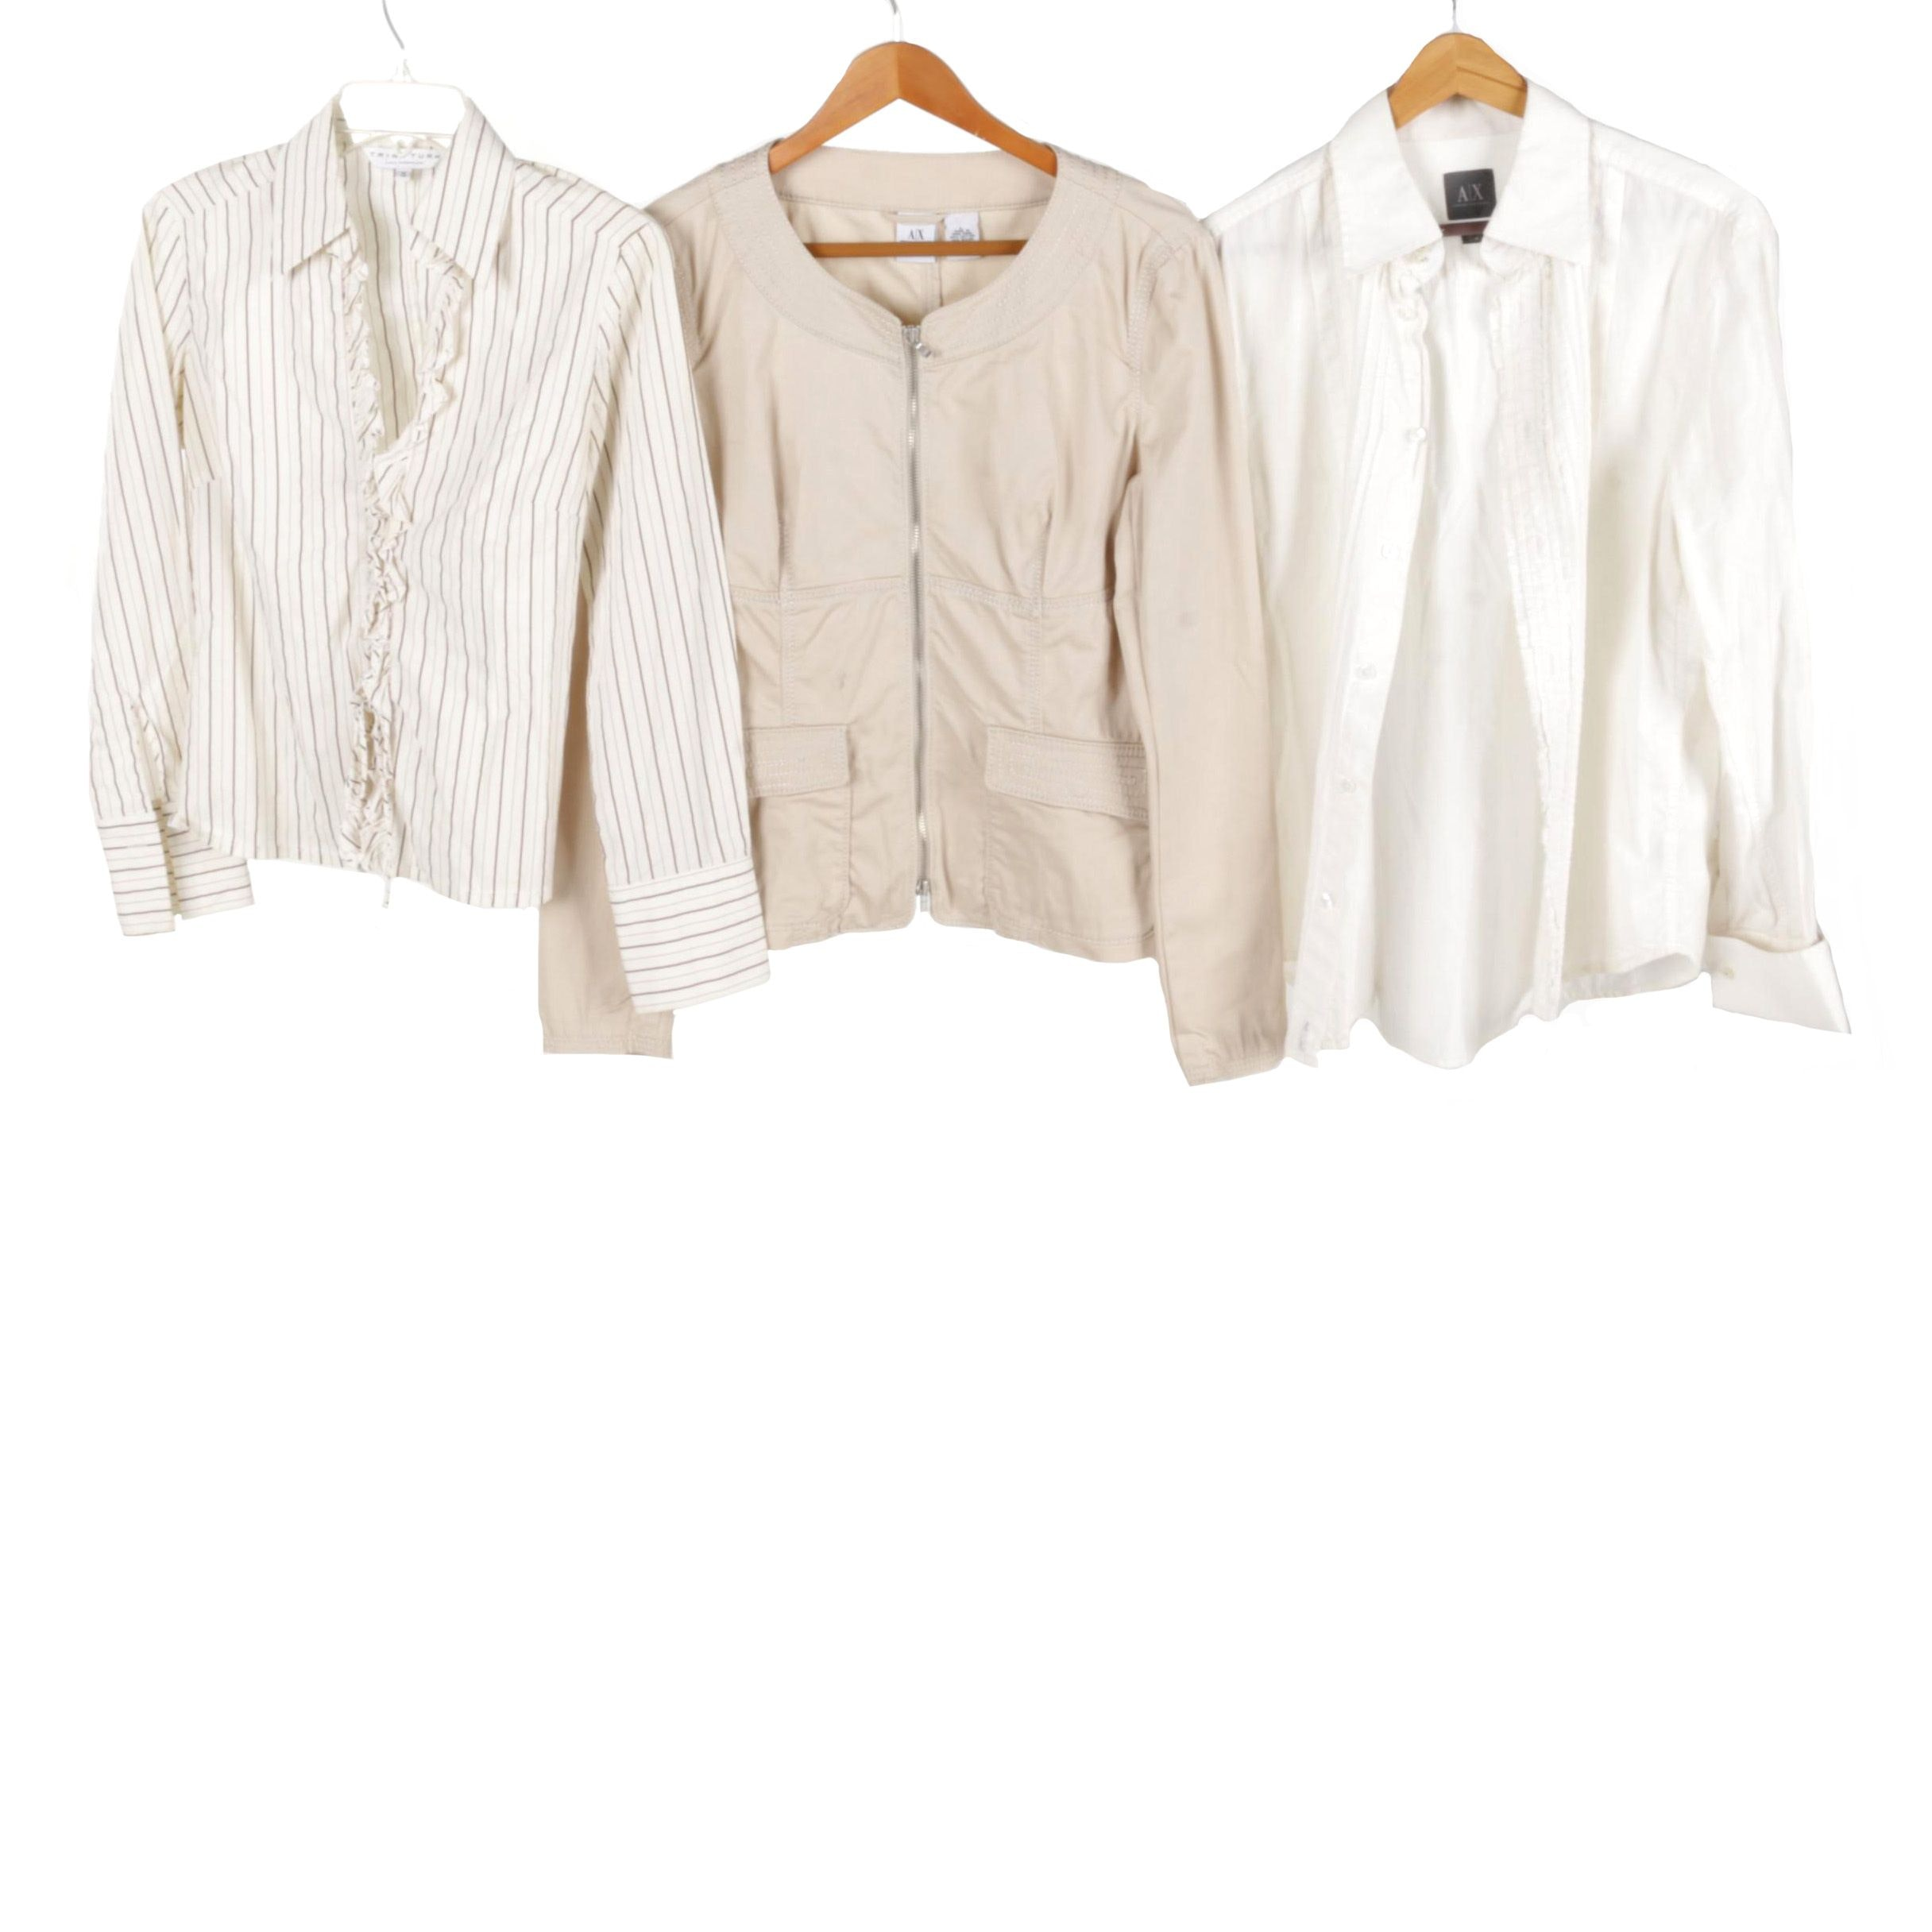 Women's Clothes Including Armani Exchange and Trina Turk